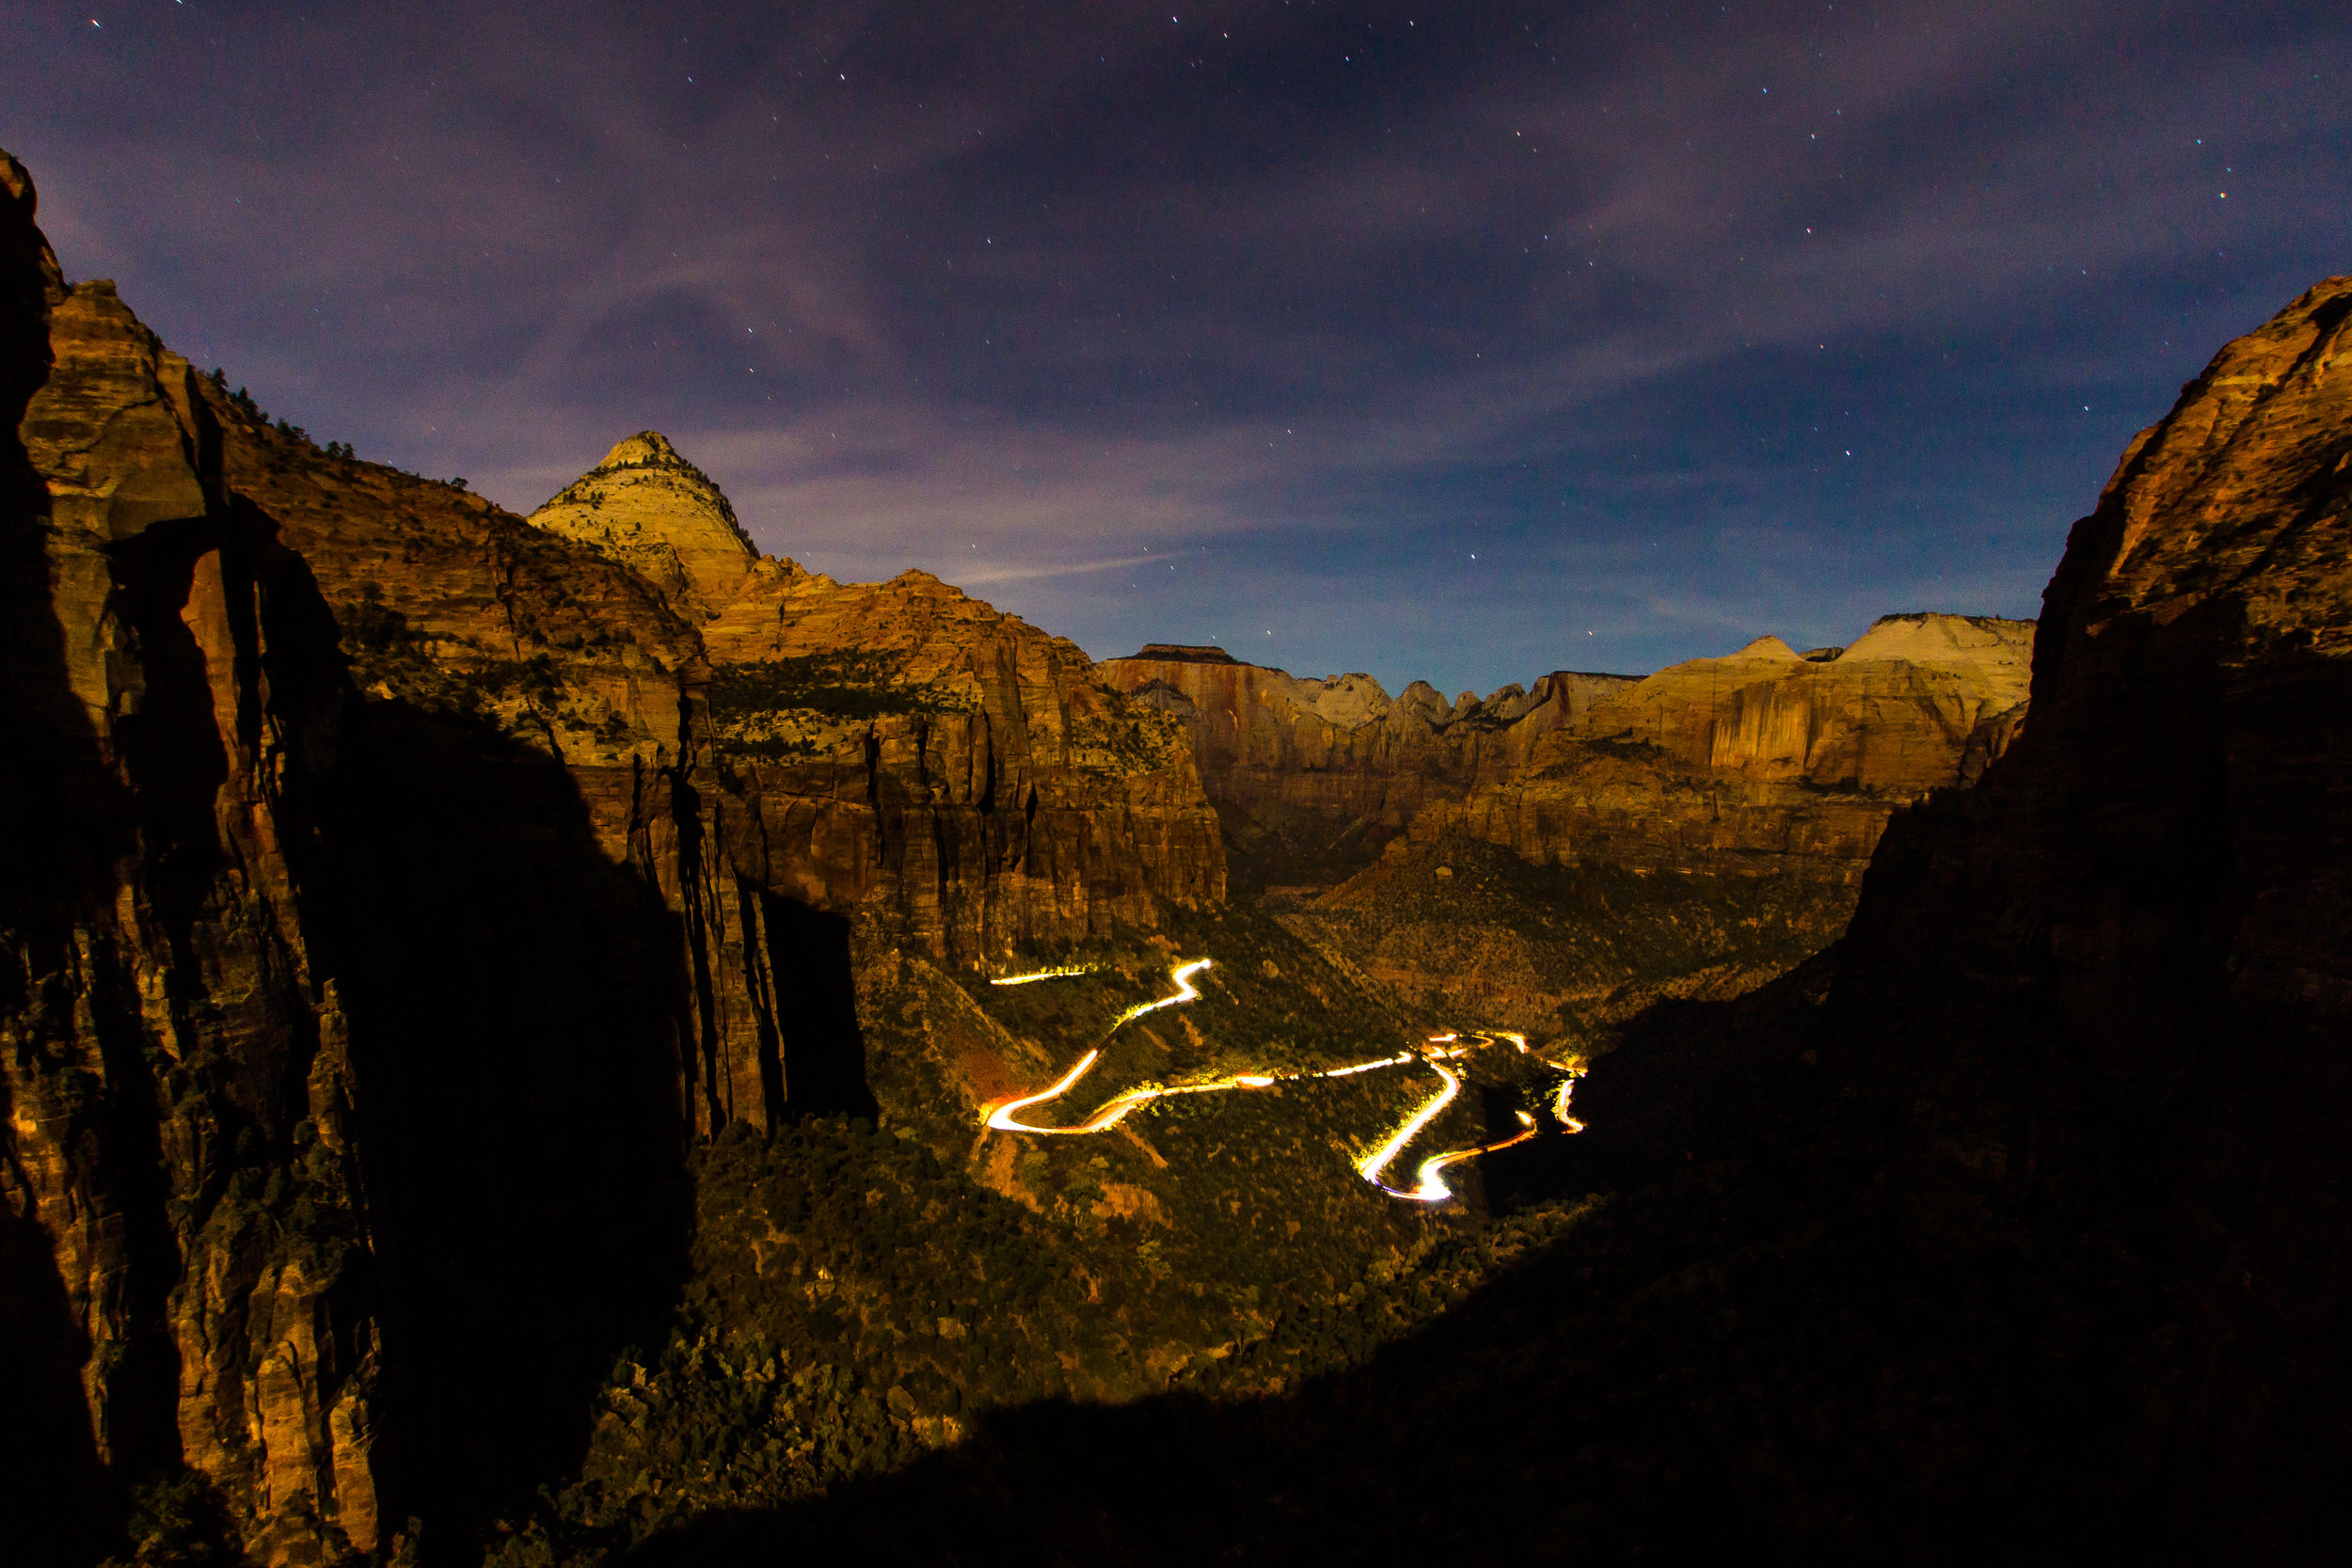 It was a near full moon so the canyon was visible except where the shadow was.